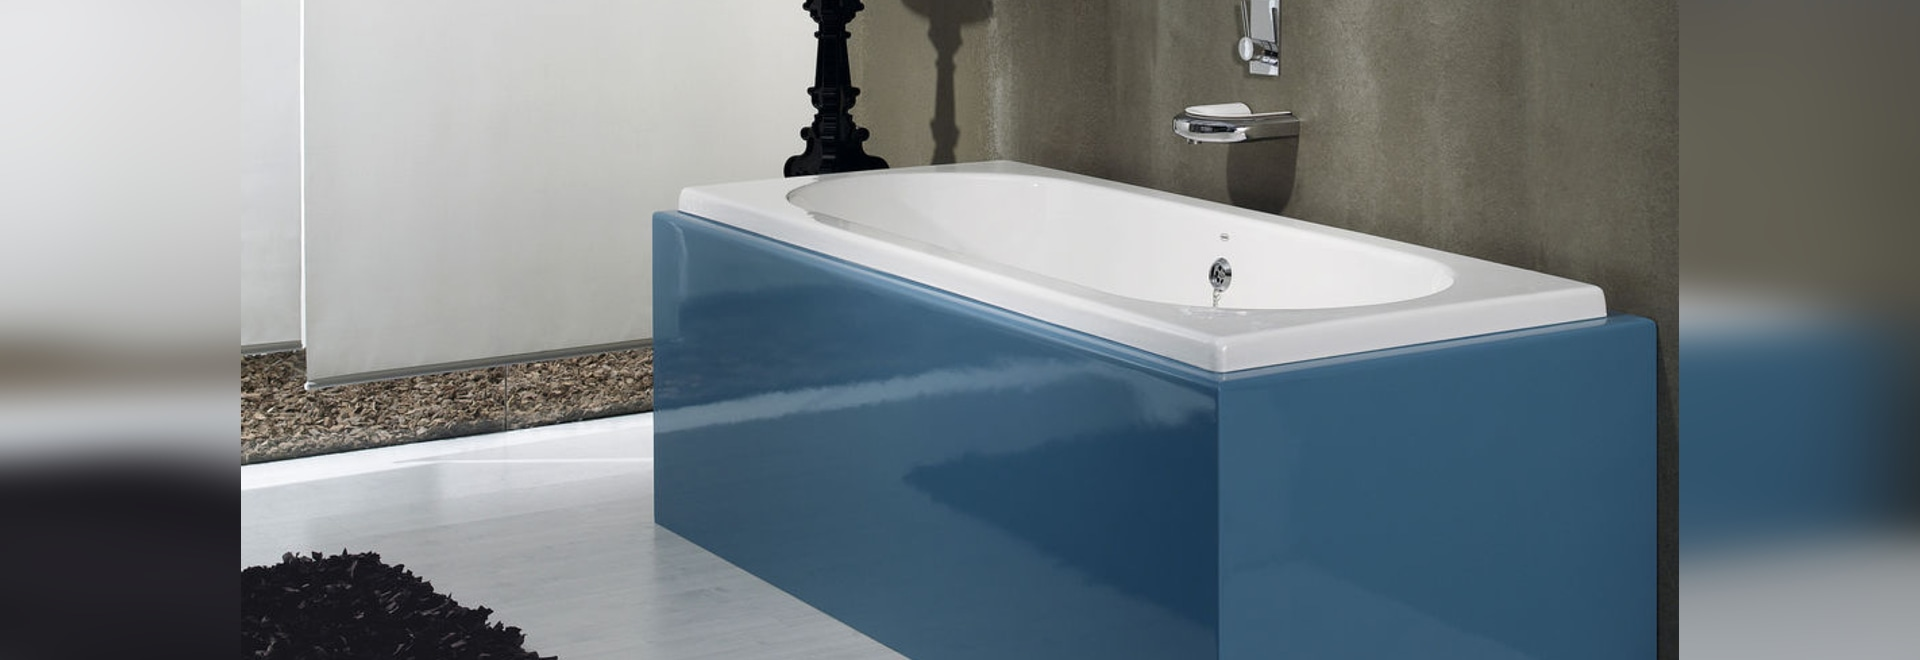 NEW: rectangular bathtub by RECOR - RECOR